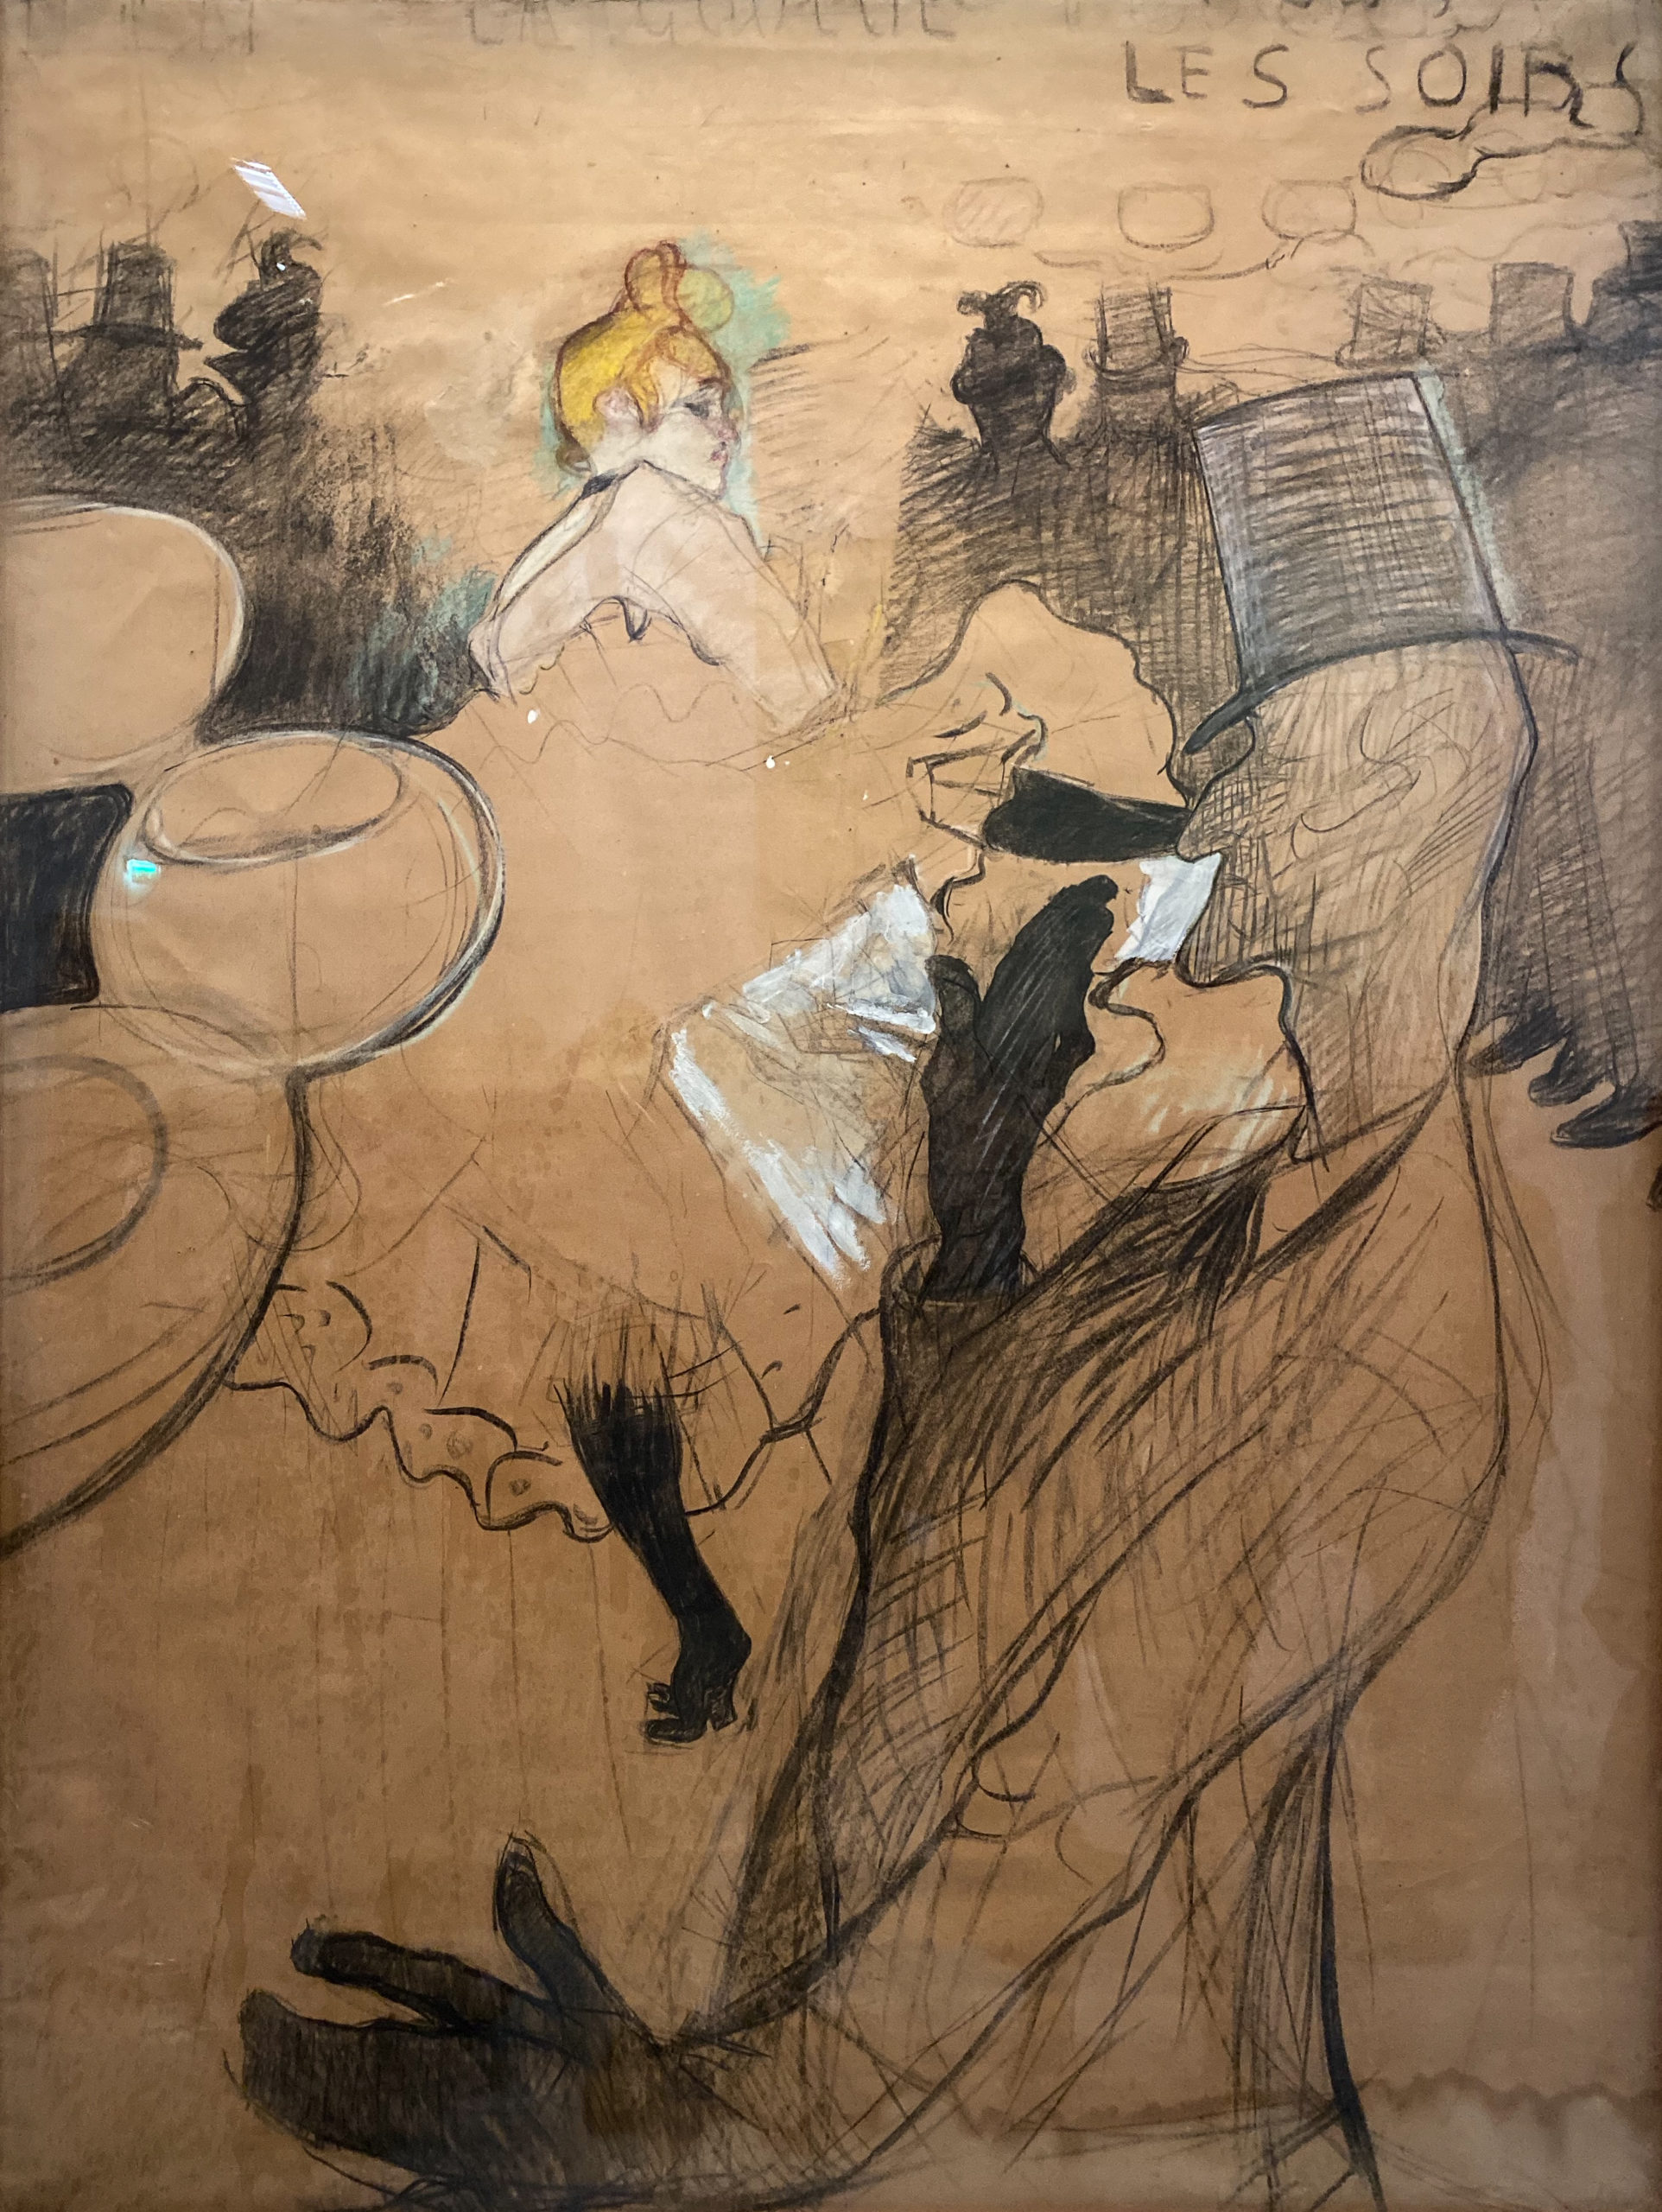 Toulouse-Lautrec im Grand Palais 2019/20 Moulin Rouge mit La Goulue